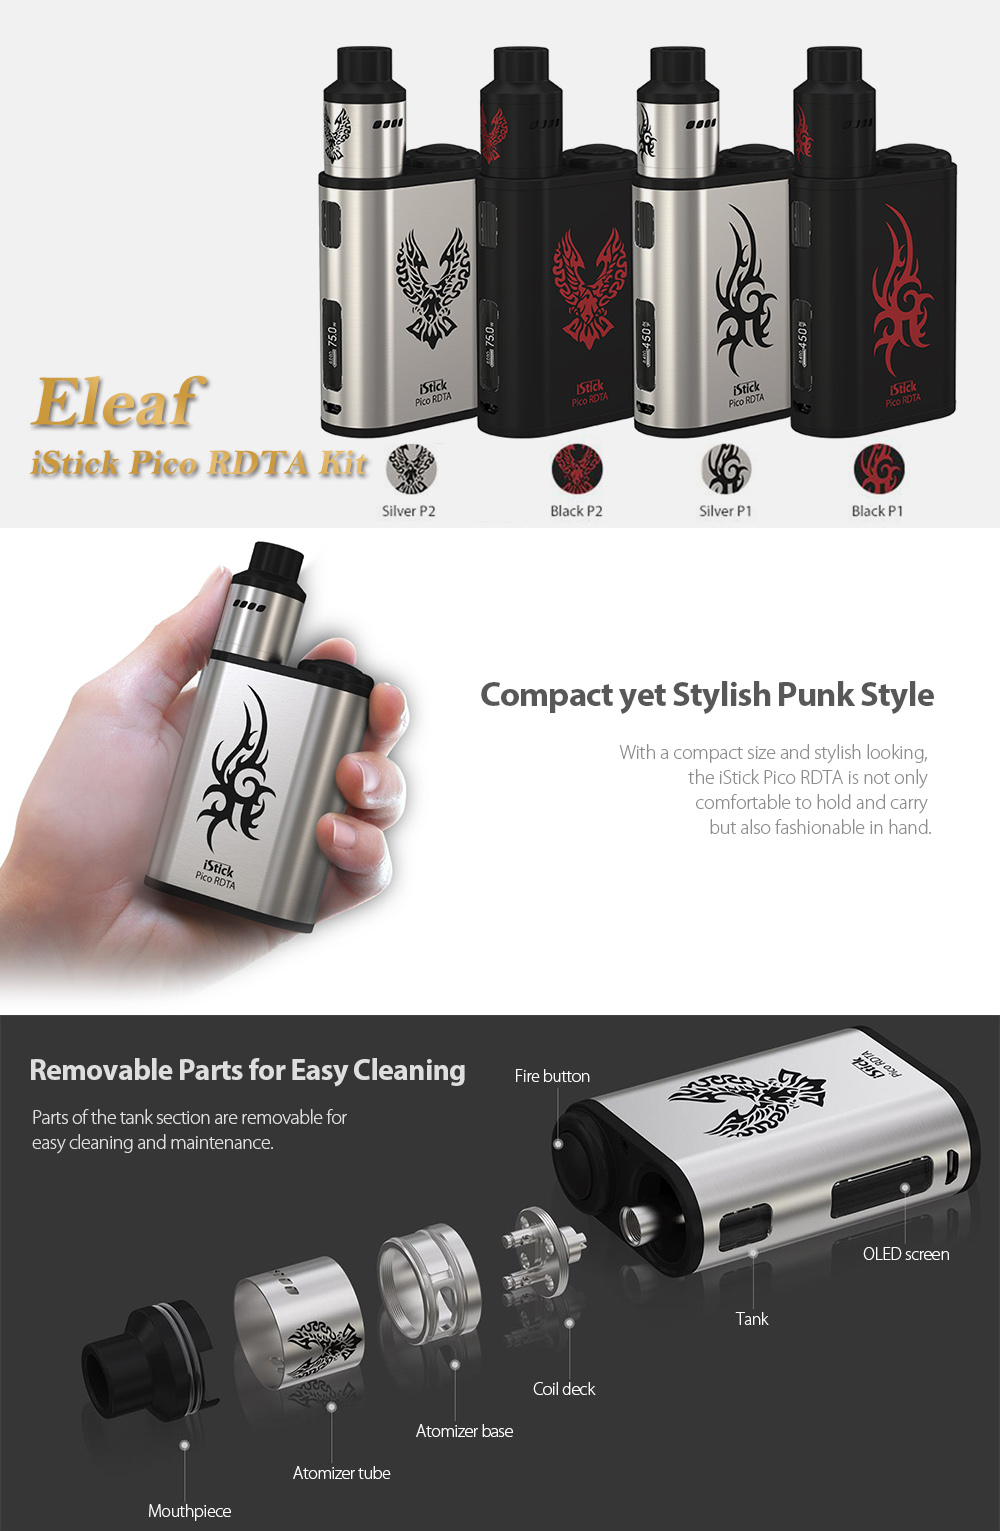 Original Eleaf Istick Pico Rdta Kit 4871 Free Shipping Starter 75w Vapor Vaporizer Package Contents 1 2 Clapton Coil Pure Cotton Usb Cable English User Manual X Spare Part